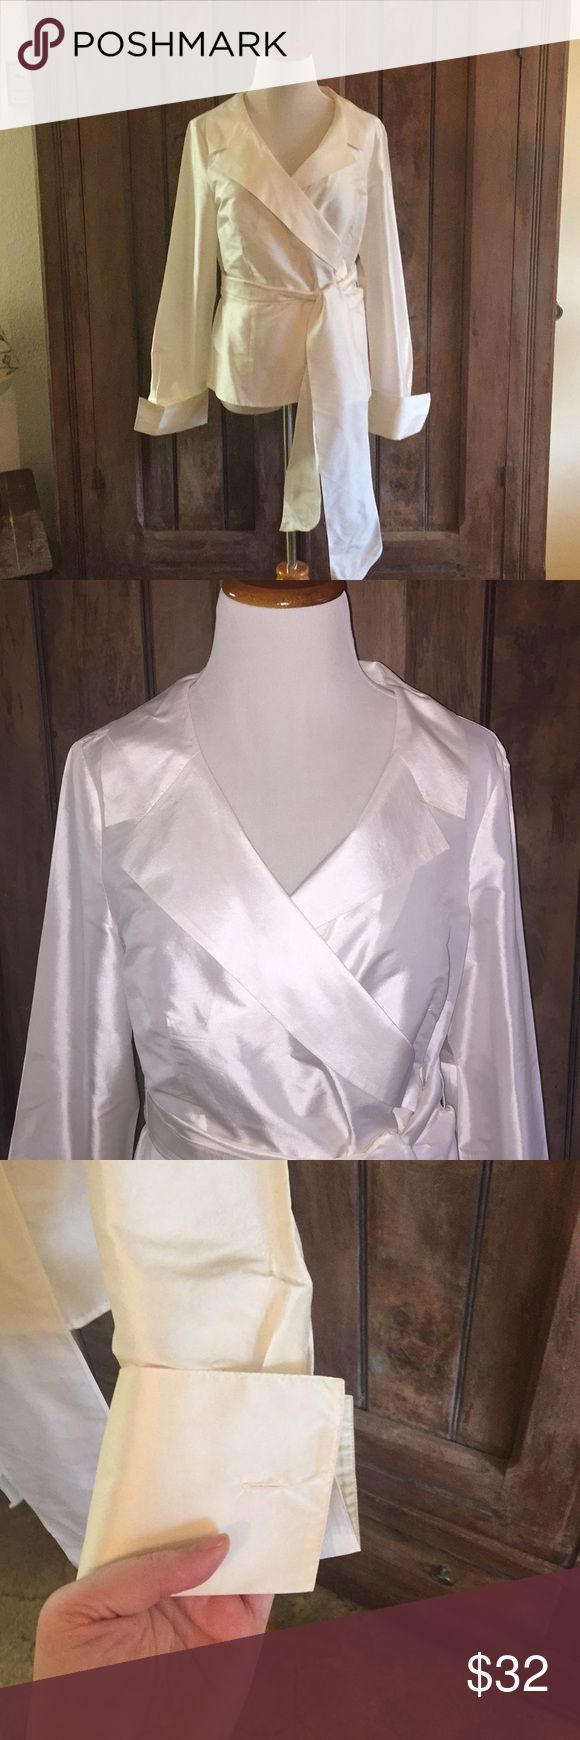 """Ann Taylor 100% Silk Wrap Excellent condition wrap around silk shirt. Tie waist. Fabric covered buttons. Missing cuff links, but those are easily replaceable and customized to your desire. Has been freshly dry cleaned. Empire waist cut and bust darts for flattering fit. Bust 33"""", waist 32"""". ID 1101 Ann Taylor Tops Blouses"""